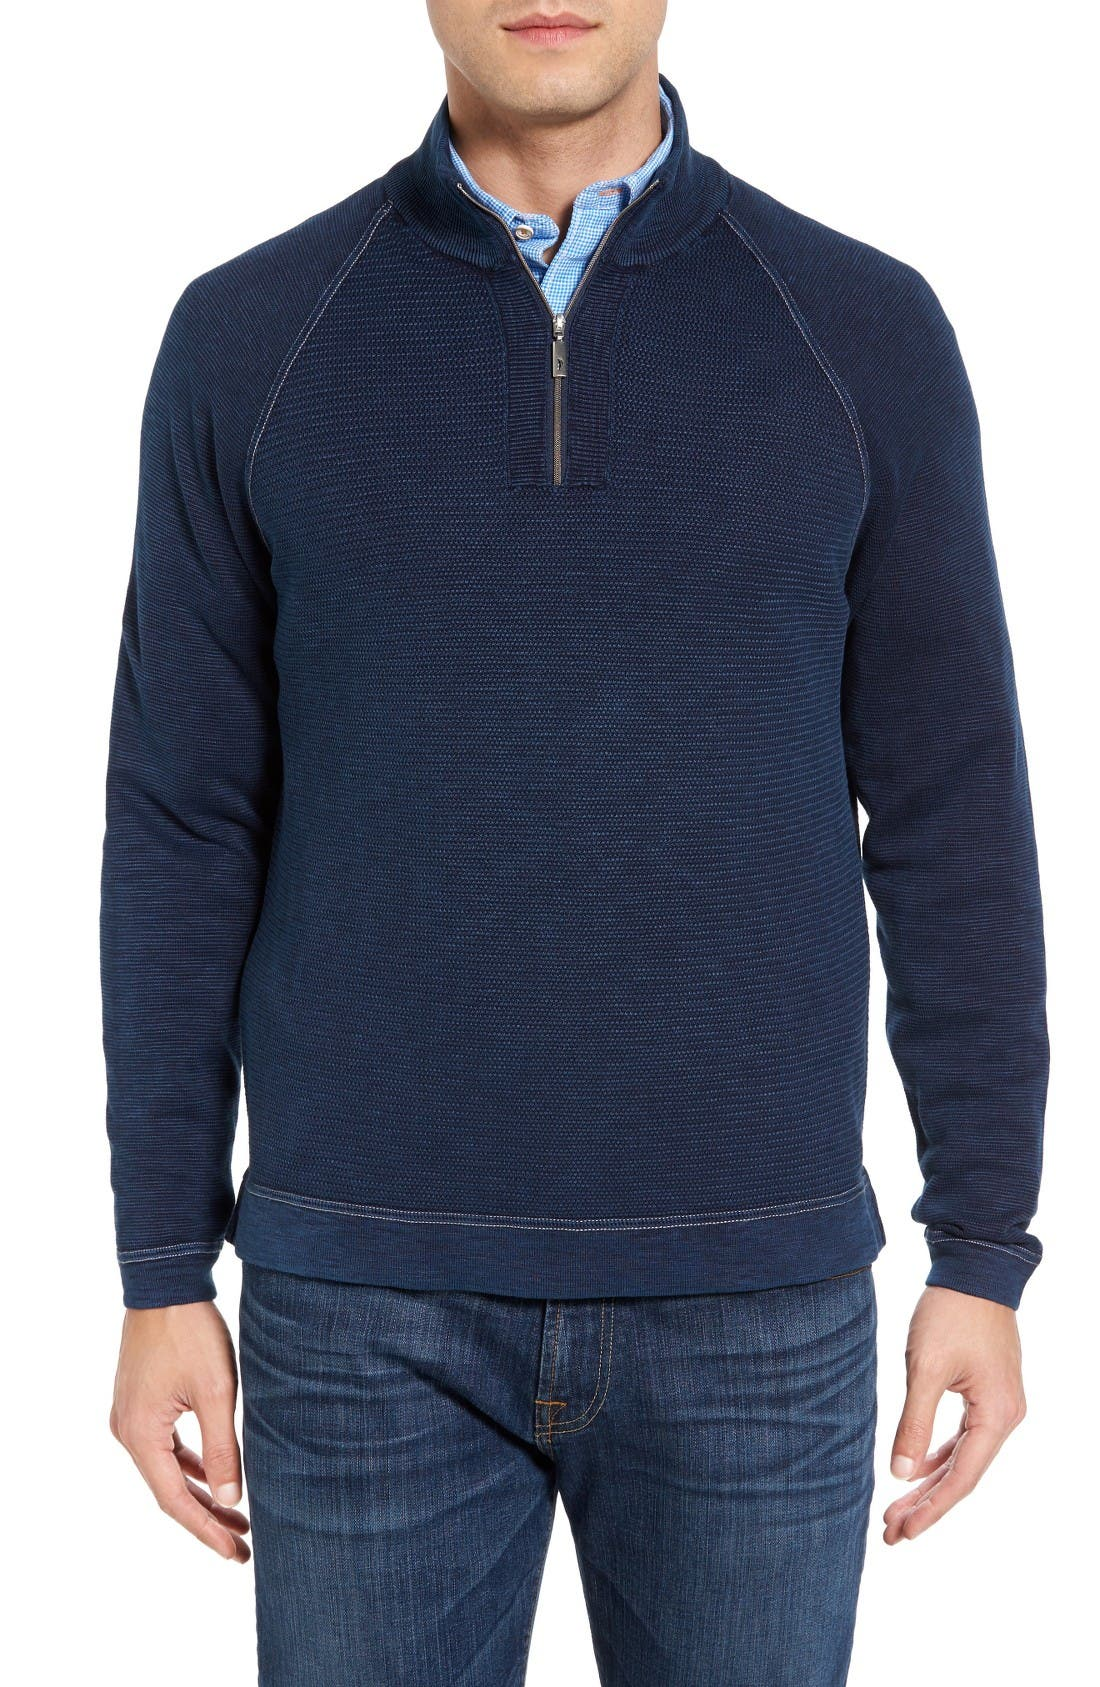 Main Image - Tommy Bahama Saltwater Tide Half Zip Pullover